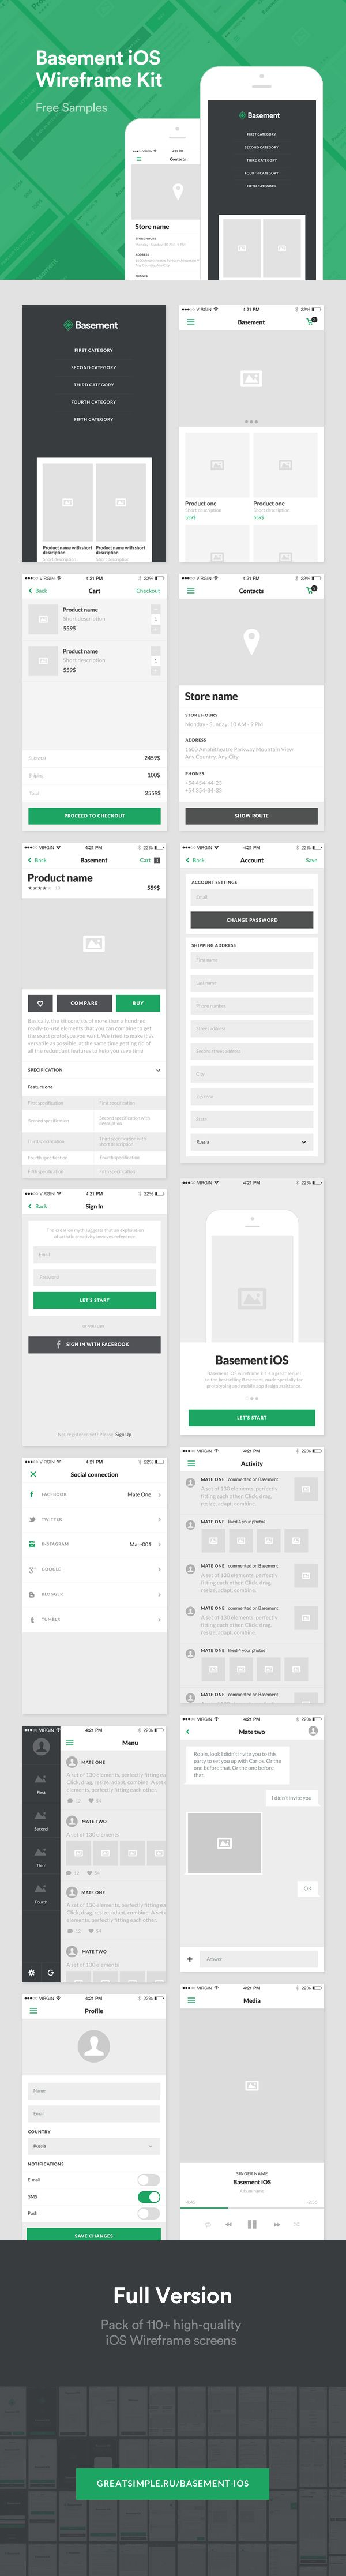 Basement iOS – Free Sample | GraphicBurger